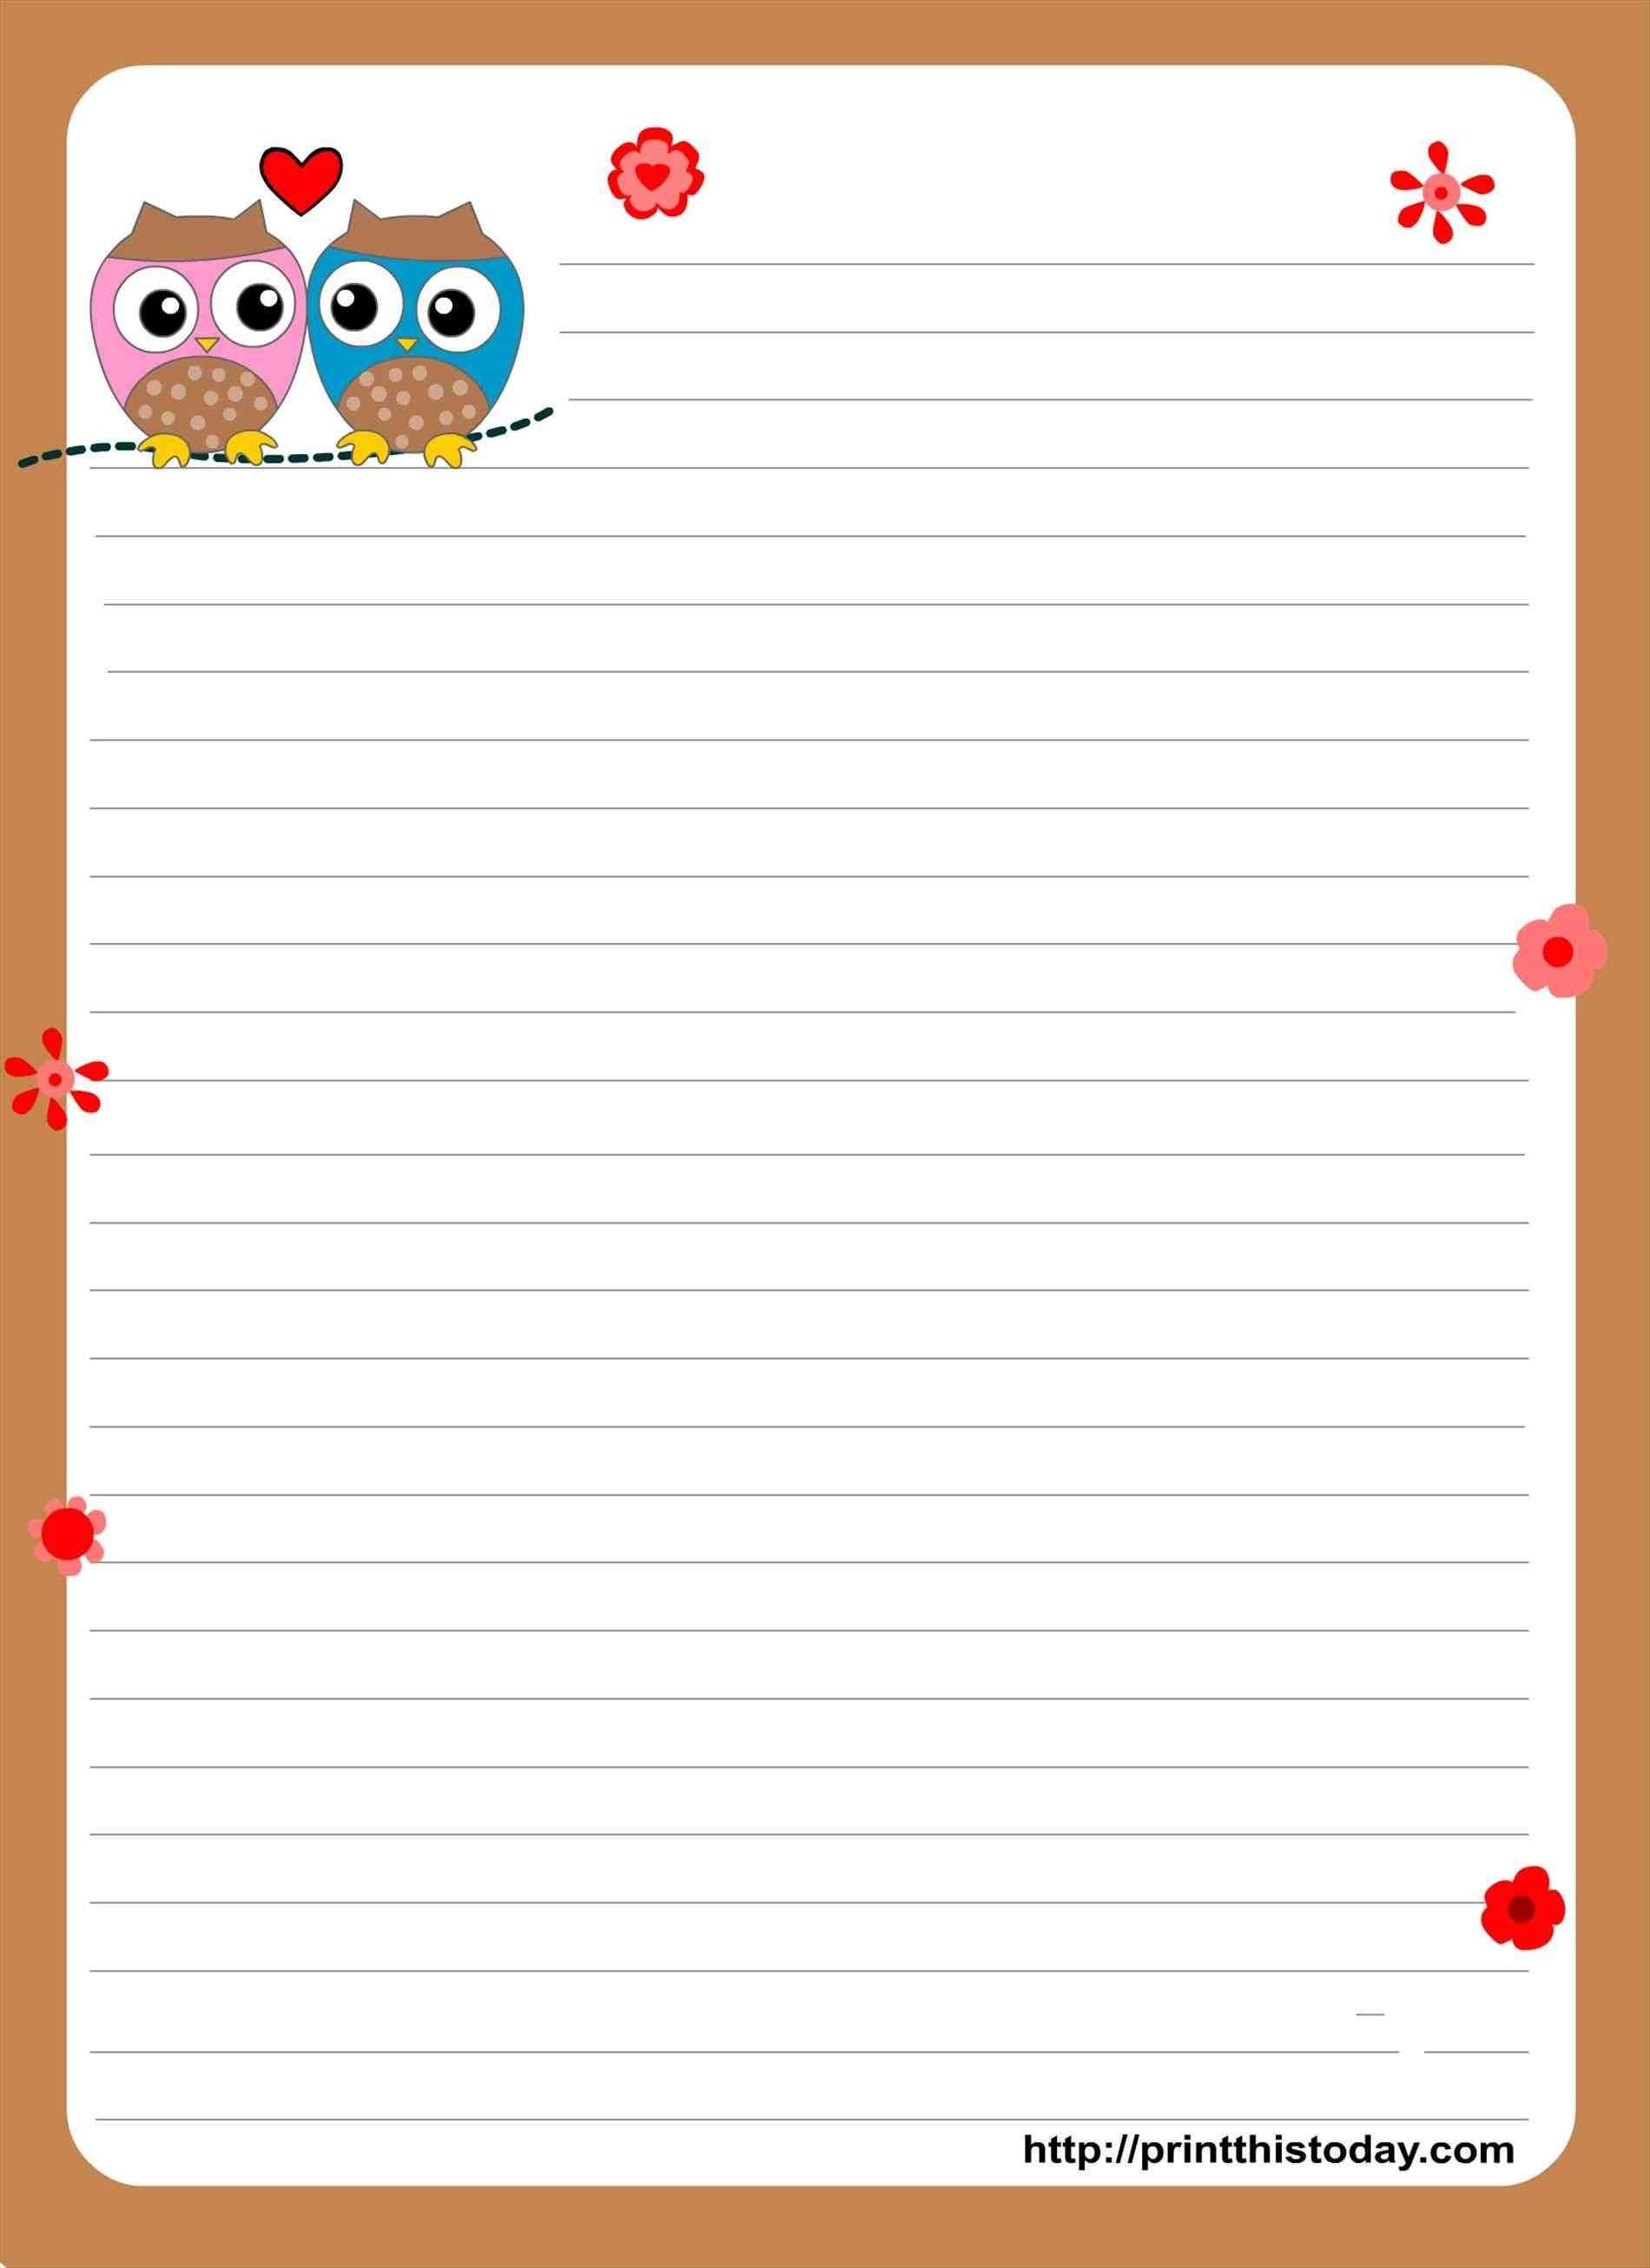 Christmas Letter Background Template In 2020 Letter Writing